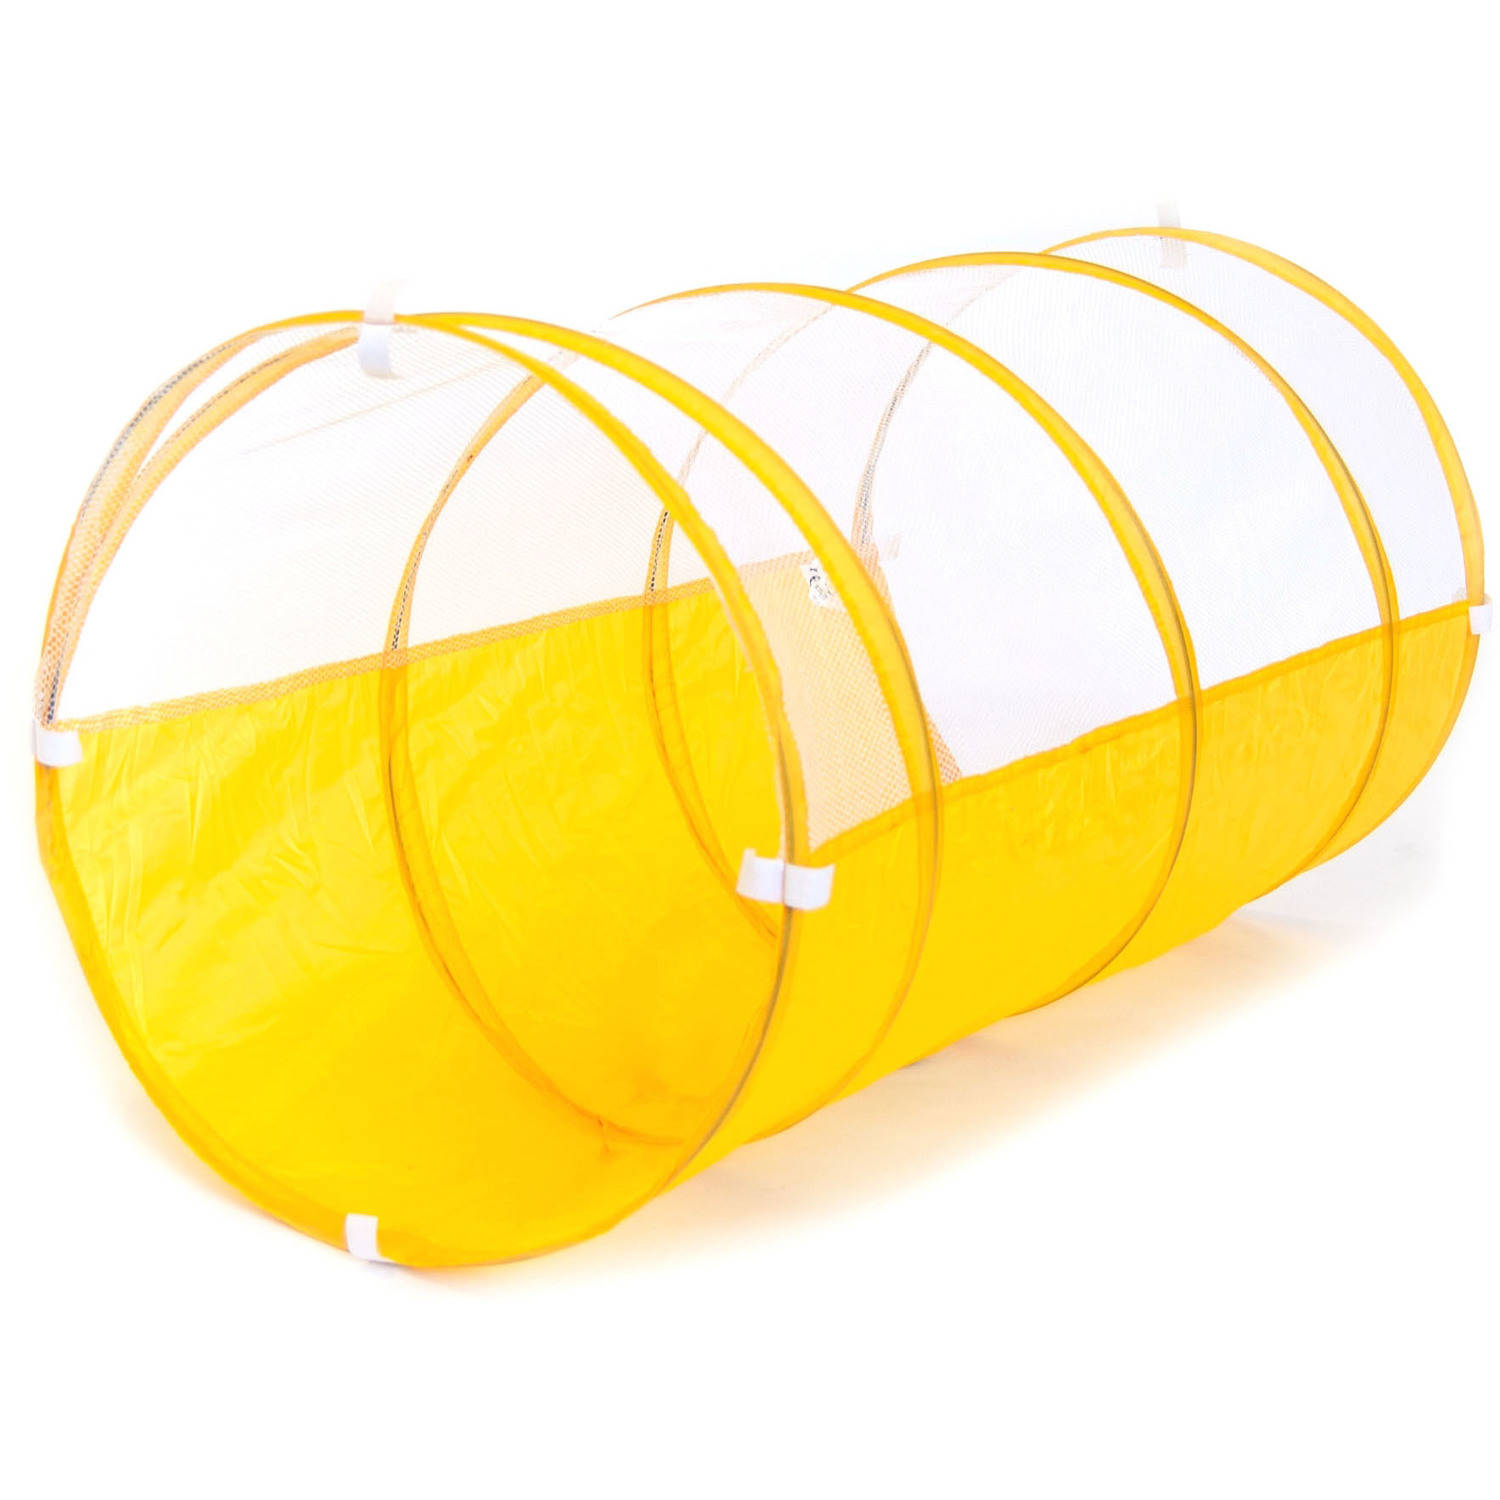 Sunshine Yellow Development Crawl Play Tunnel with Safety Meshing for Child Visibility and Tote Bag